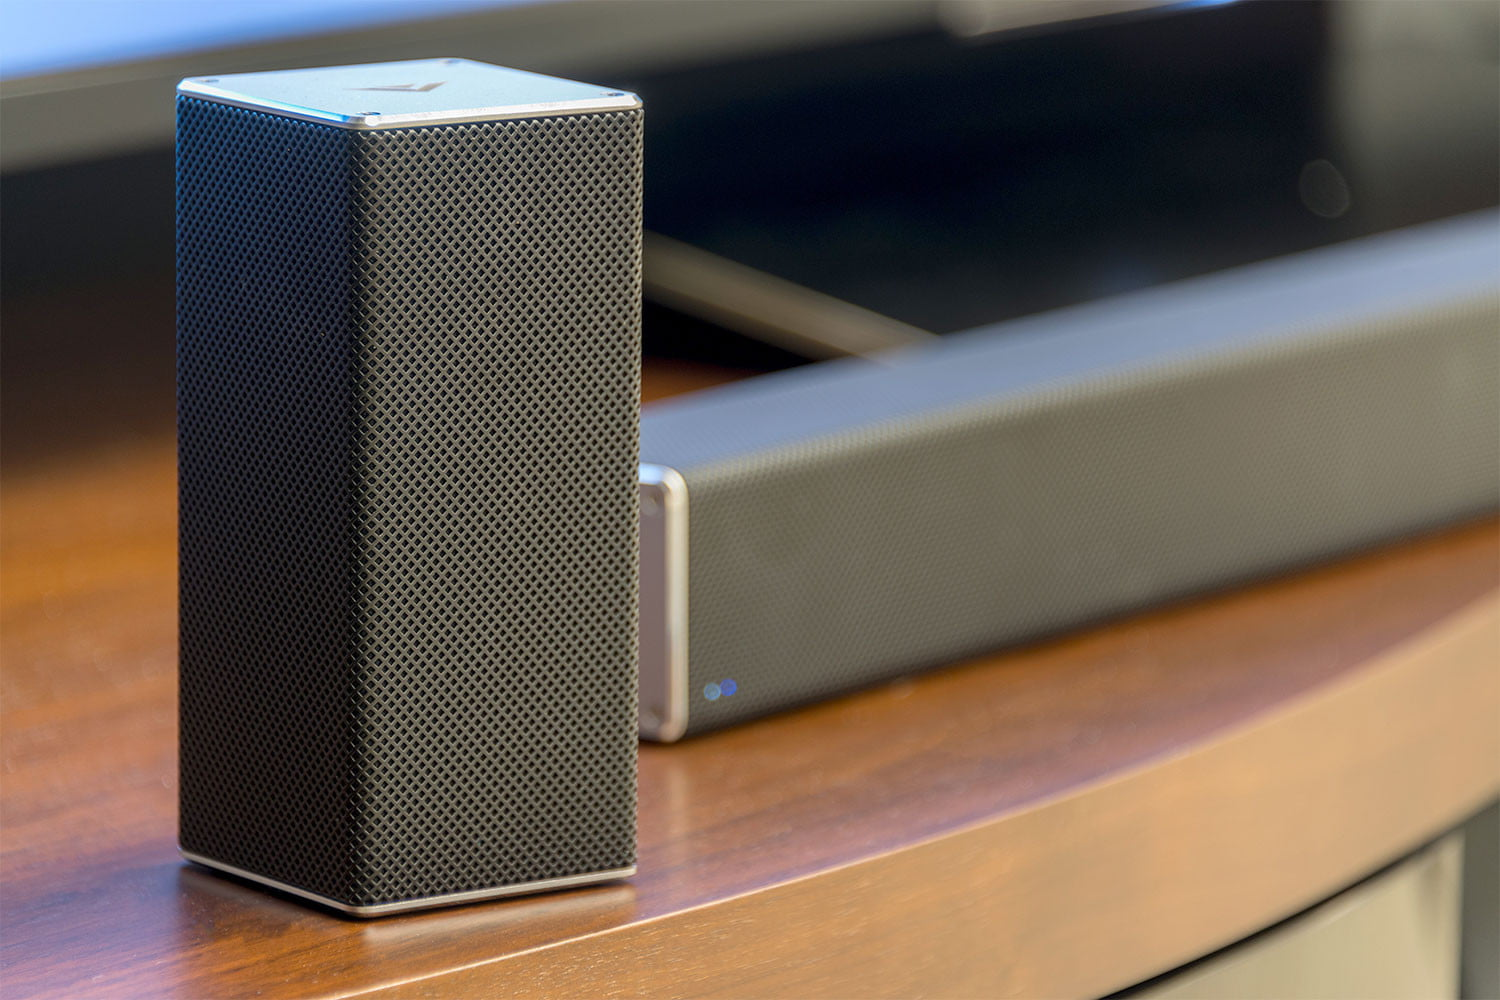 Vizio Sb4551 D5 Smartcast 5 1 Soundbar Review Digital Trends